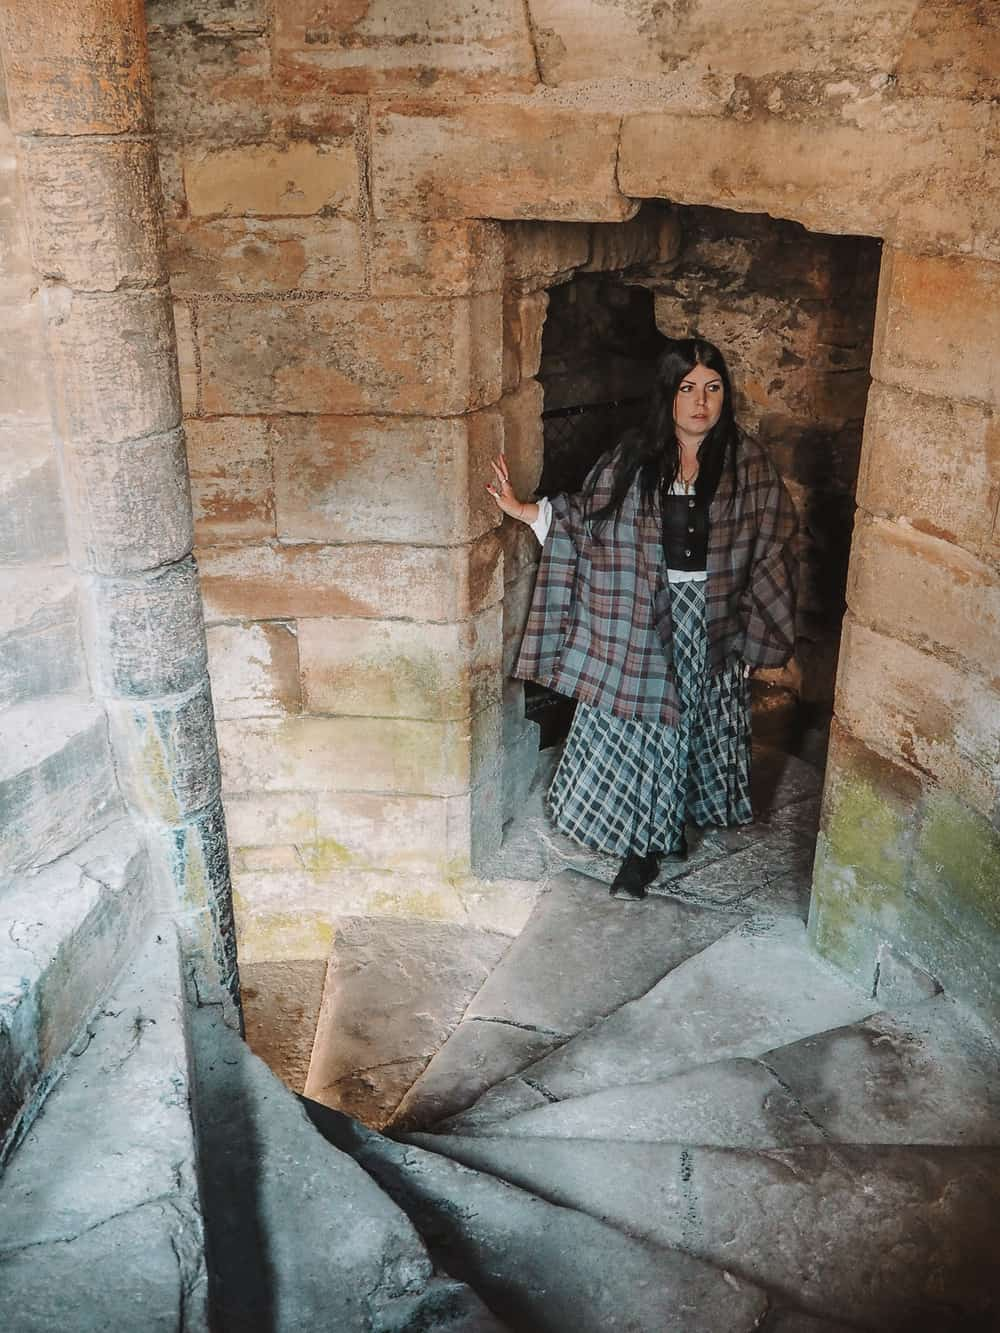 Linlithgow Palace Outlander Location Wentworth Prison